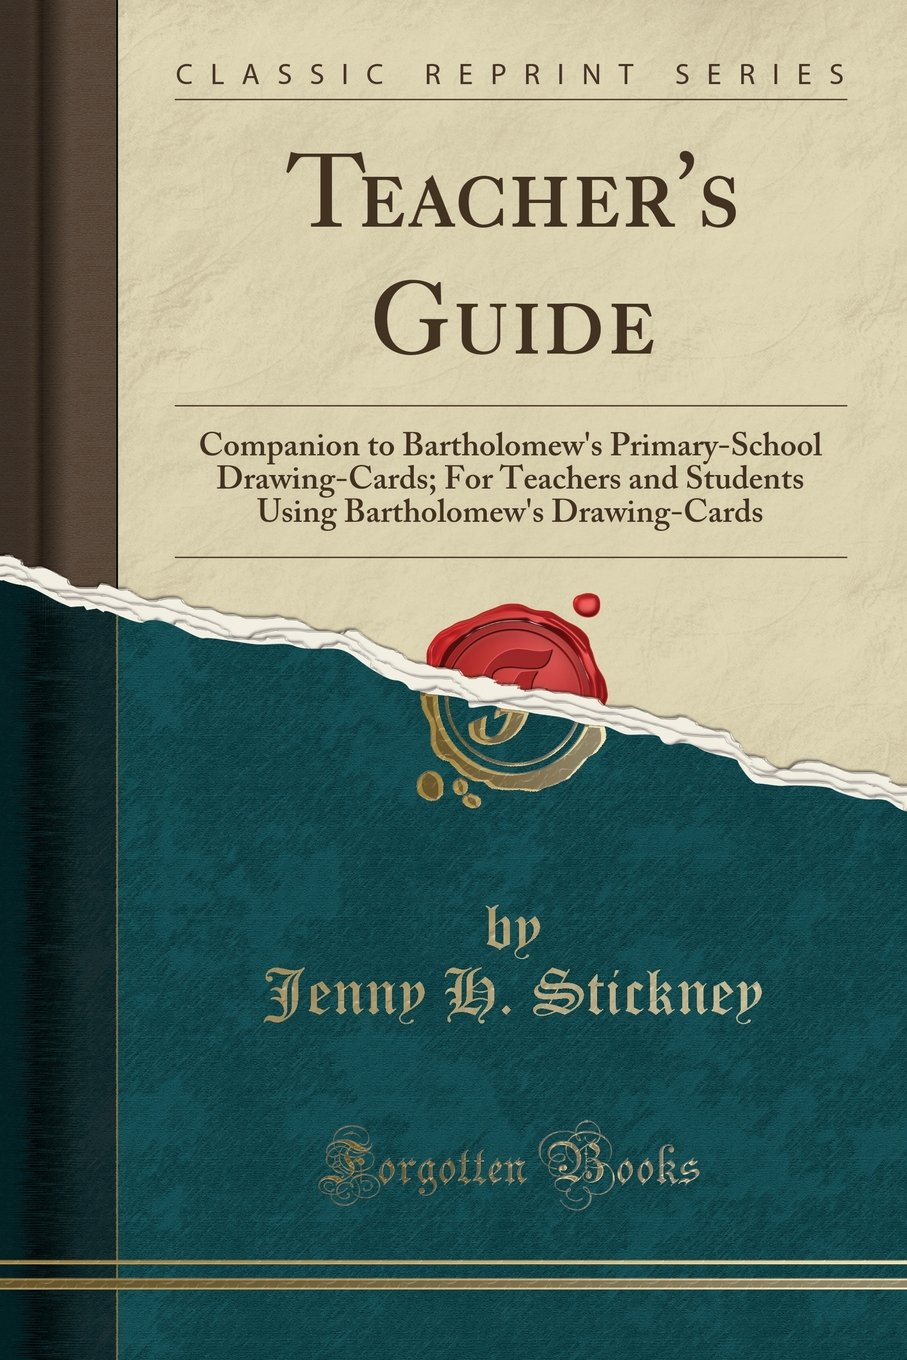 Teacher's Guide: Companion to Bartholomew's Primary-School Drawing-Cards; For Teachers and Students Using Bartholomew's Drawing-Cards (Classic Reprint) PDF